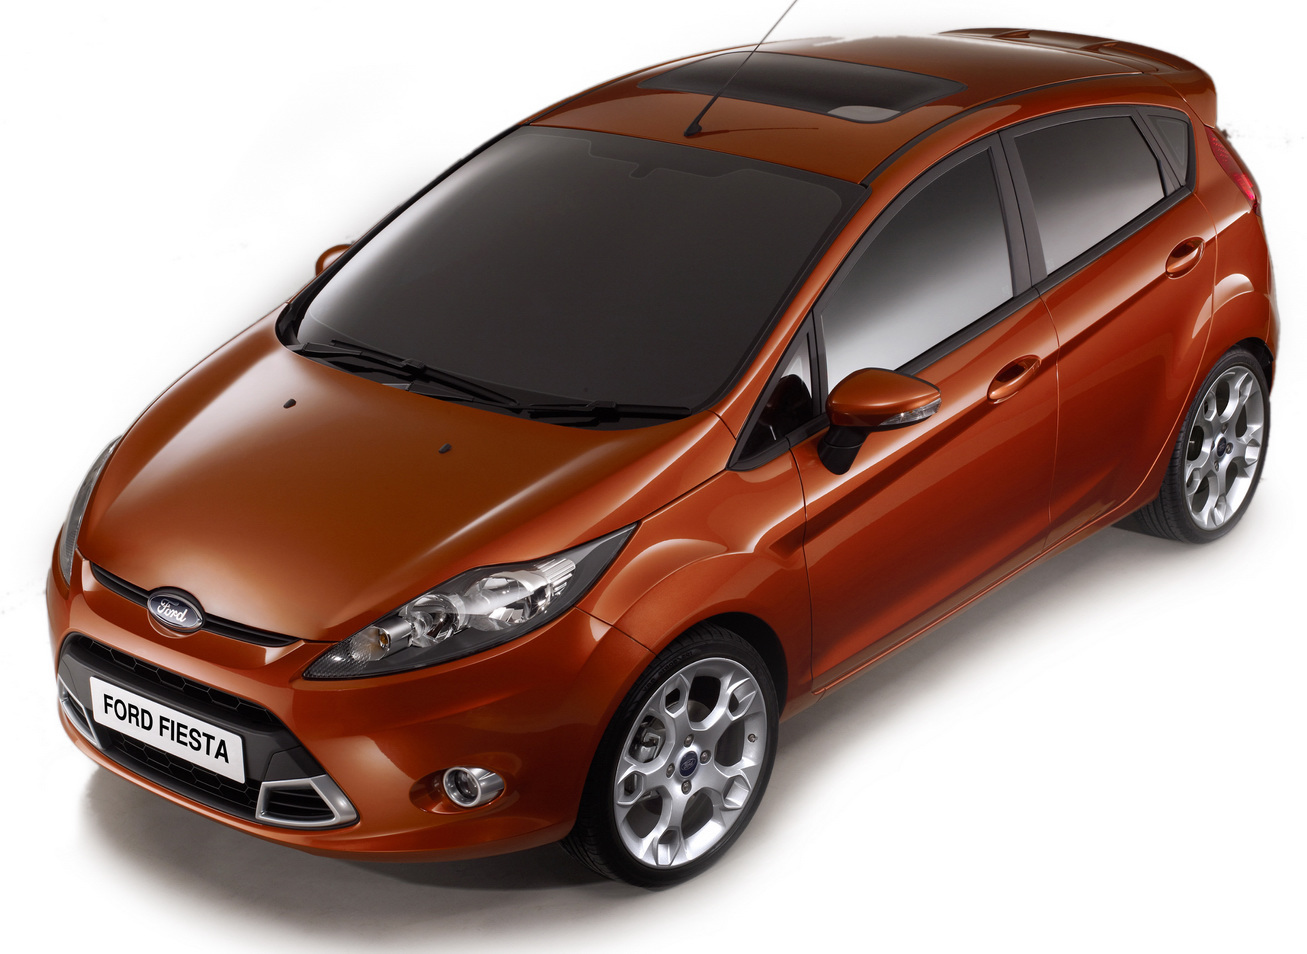 Archive 2010 Duratorq Tdci Cars 2002 Ford Focus Se Wagon 20 Liter Dohc 16valve Zetec 4 Cylinder Models New Fiesta 125